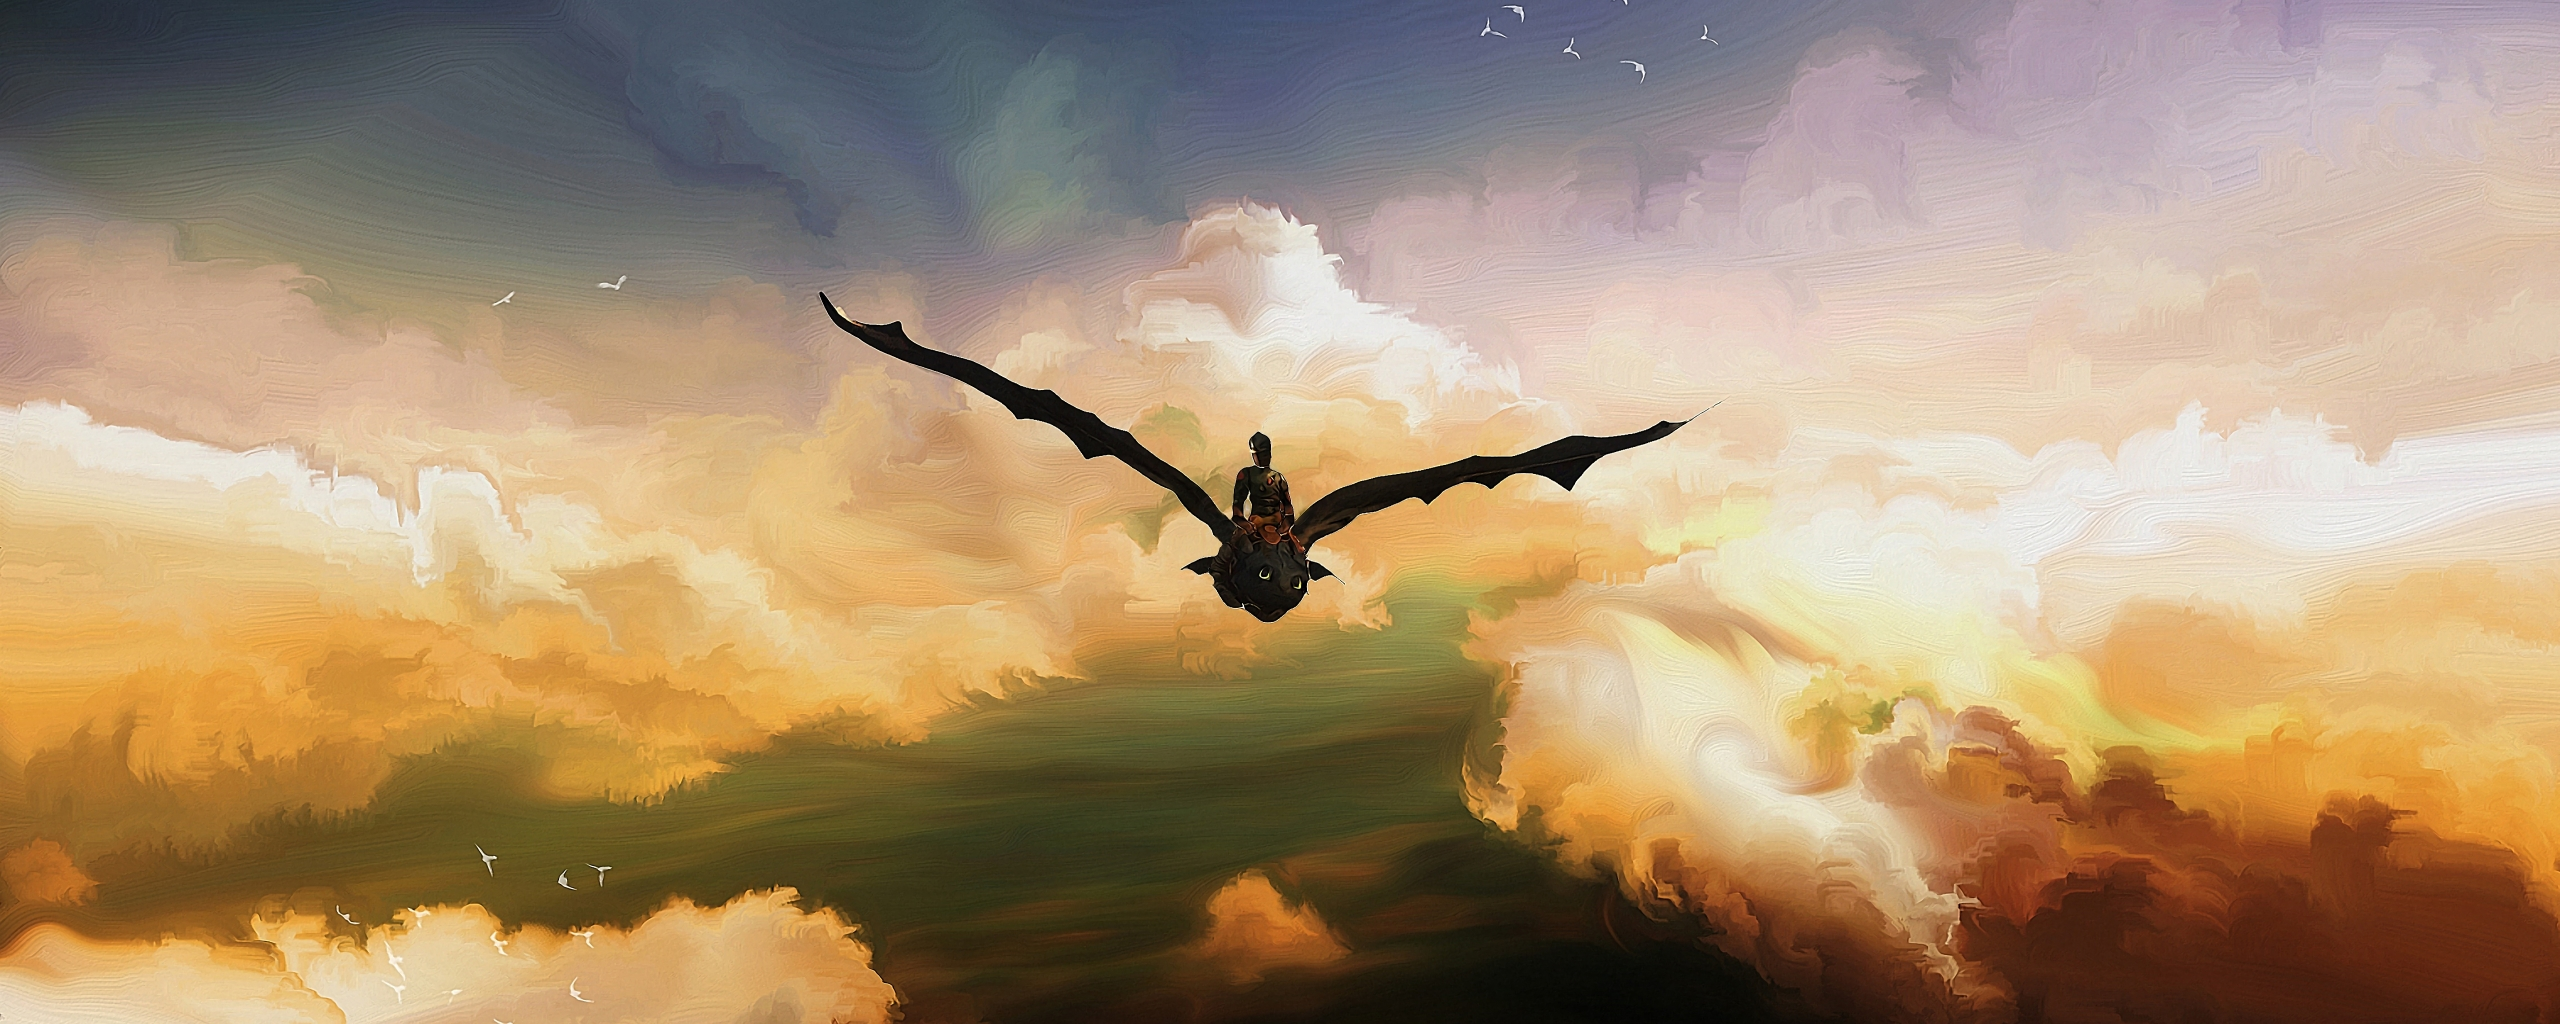 2560x1024 How To Train Your Dragon The Hidden World 4k 8k 2560x1024 Resolution Wallpaper Hd Movies 4k Wallpapers Images Photos And Background